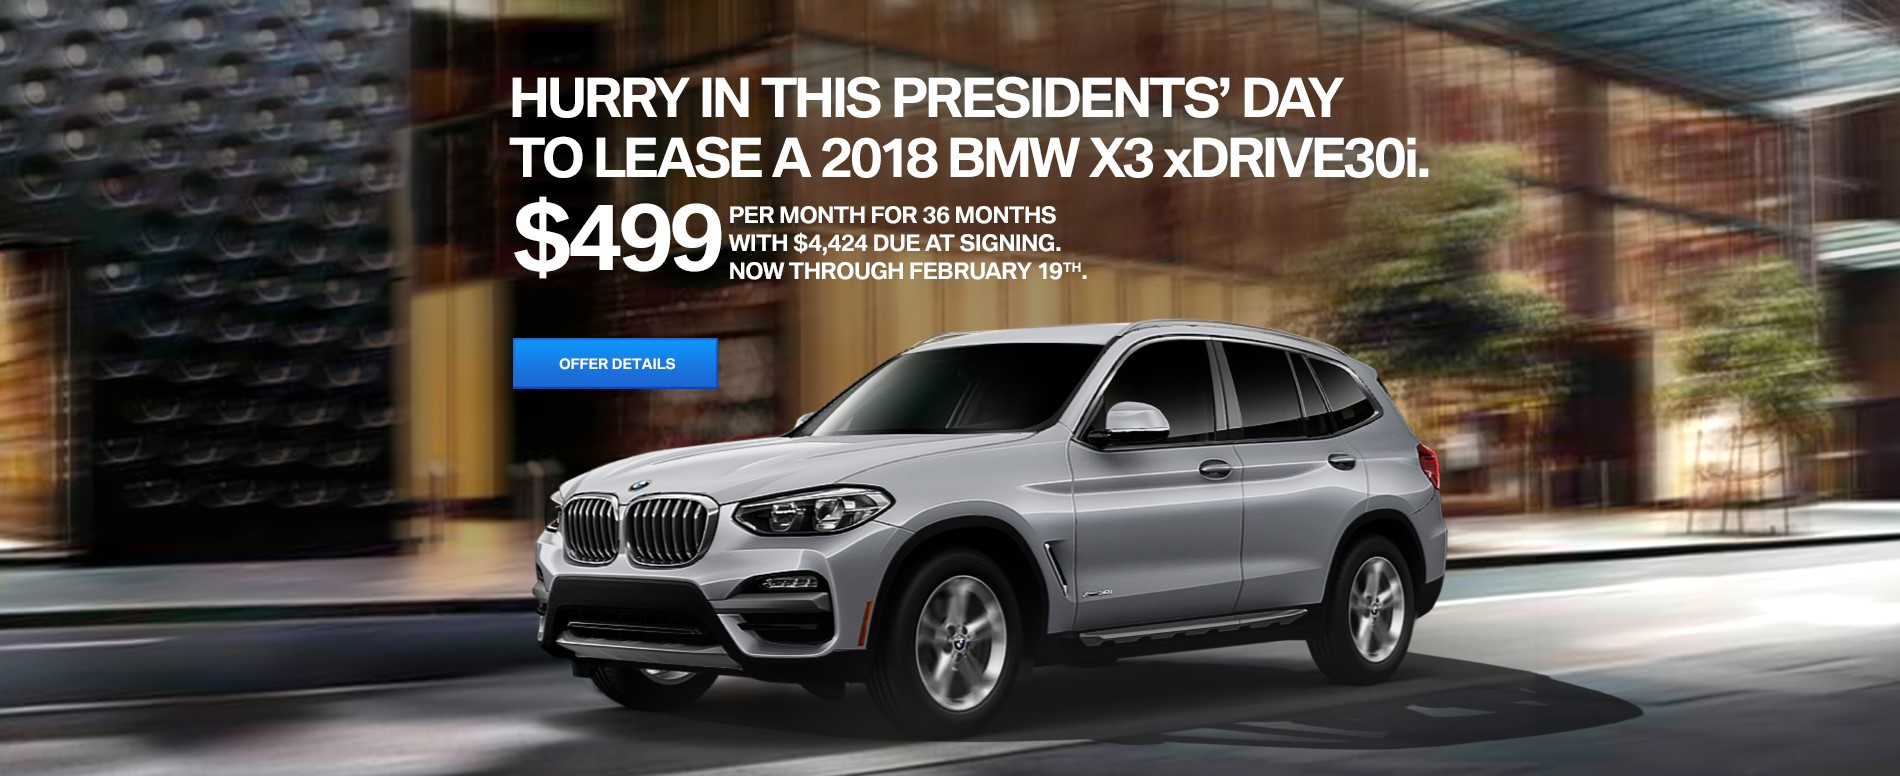 Presidents' Day X3 lease